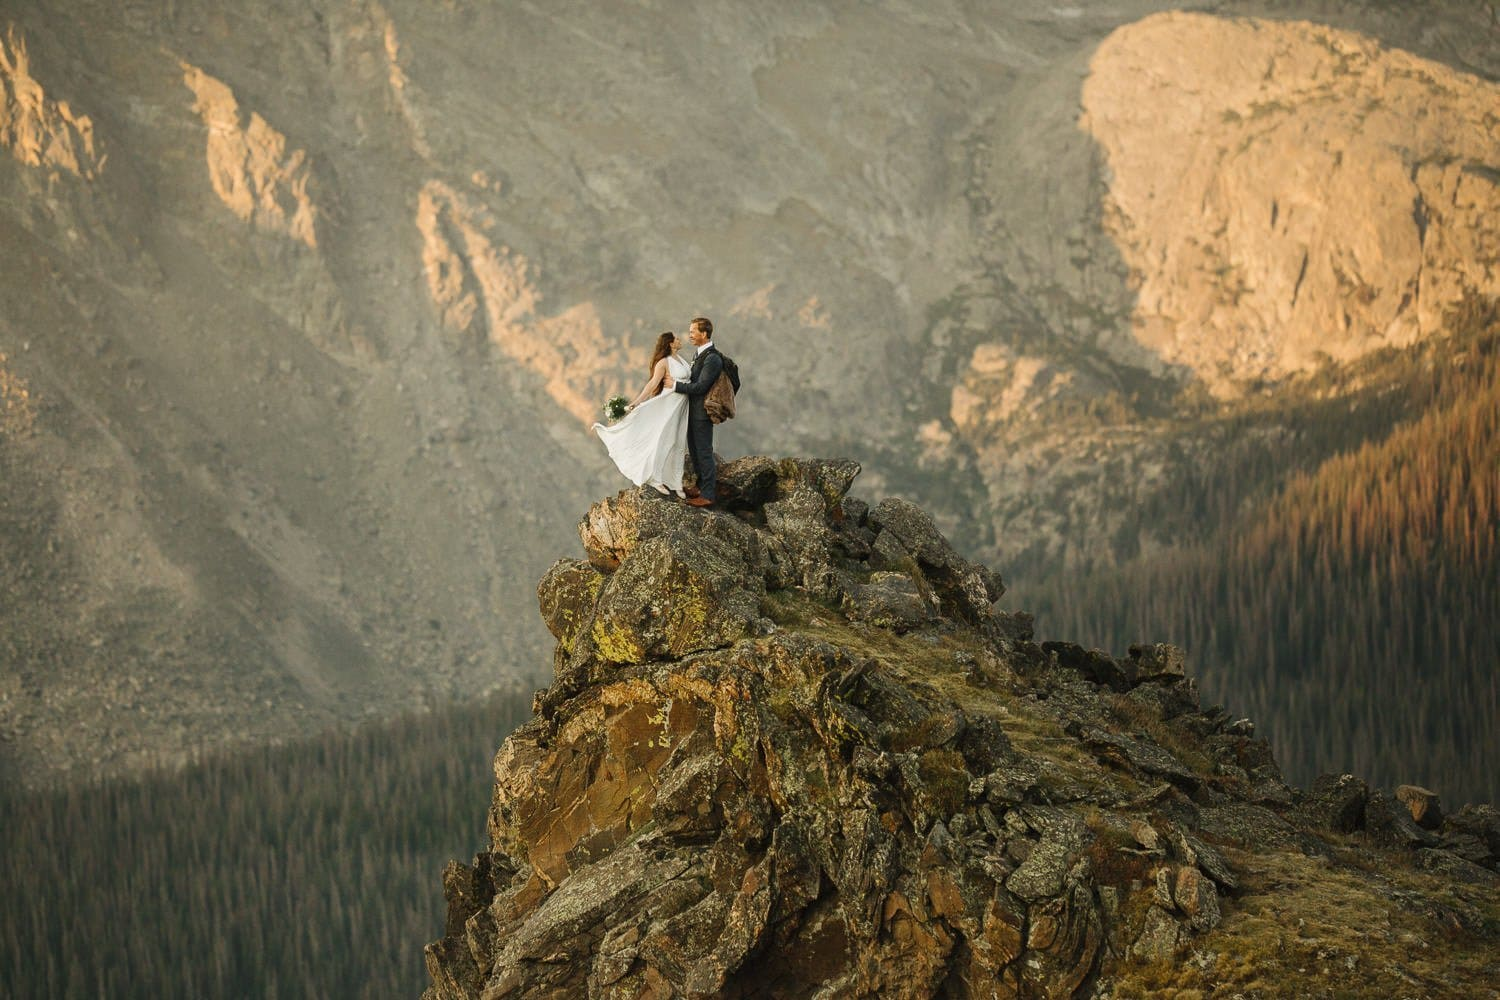 Rocky_Mountain_Adventure_Elopement_PHotographer_Justyna_E_Butler